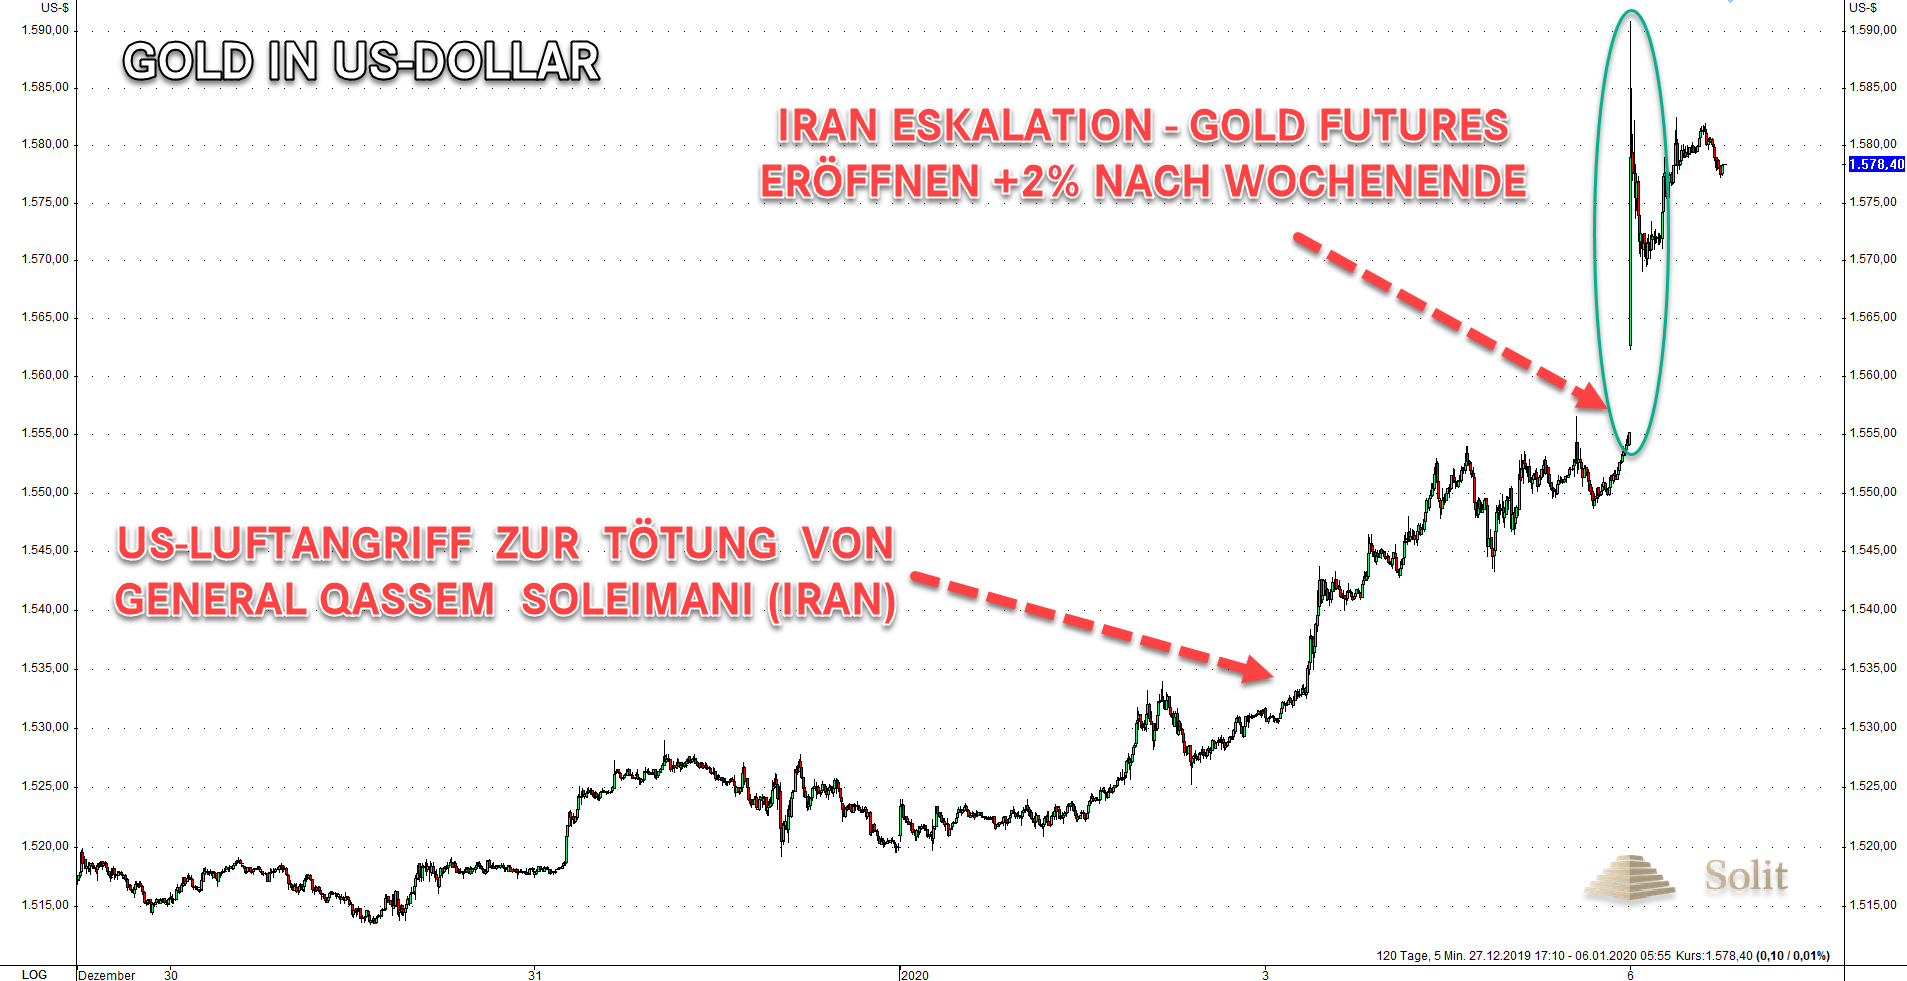 Gold in US-Dollar während Irankrise 06.01.2020